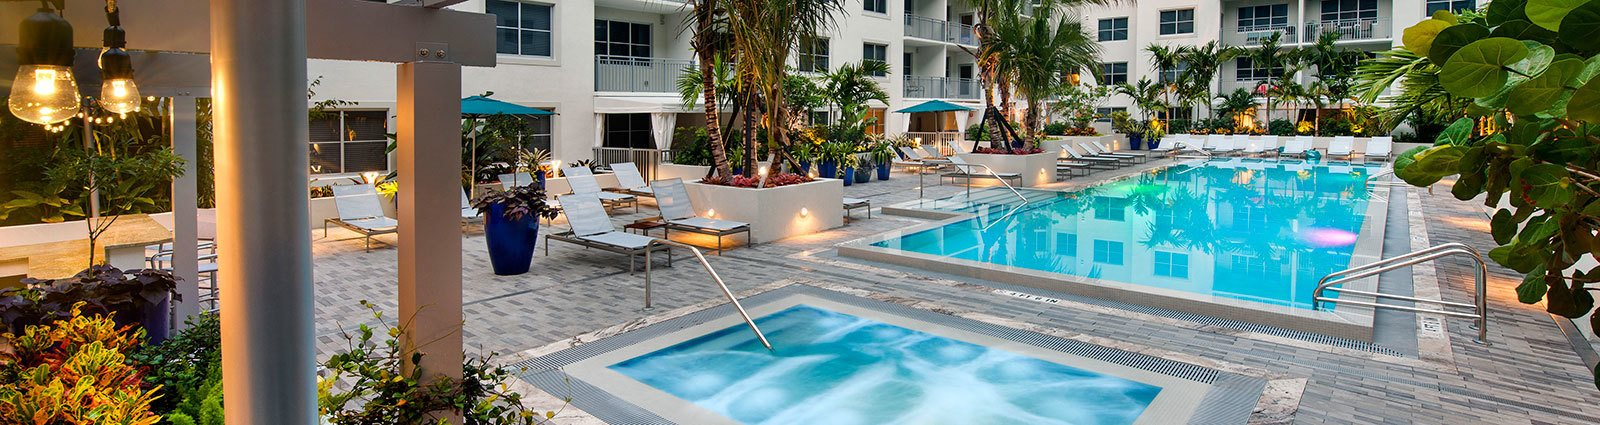 Schedule a tour to view our apartments in Ft. Lauderdale, FL